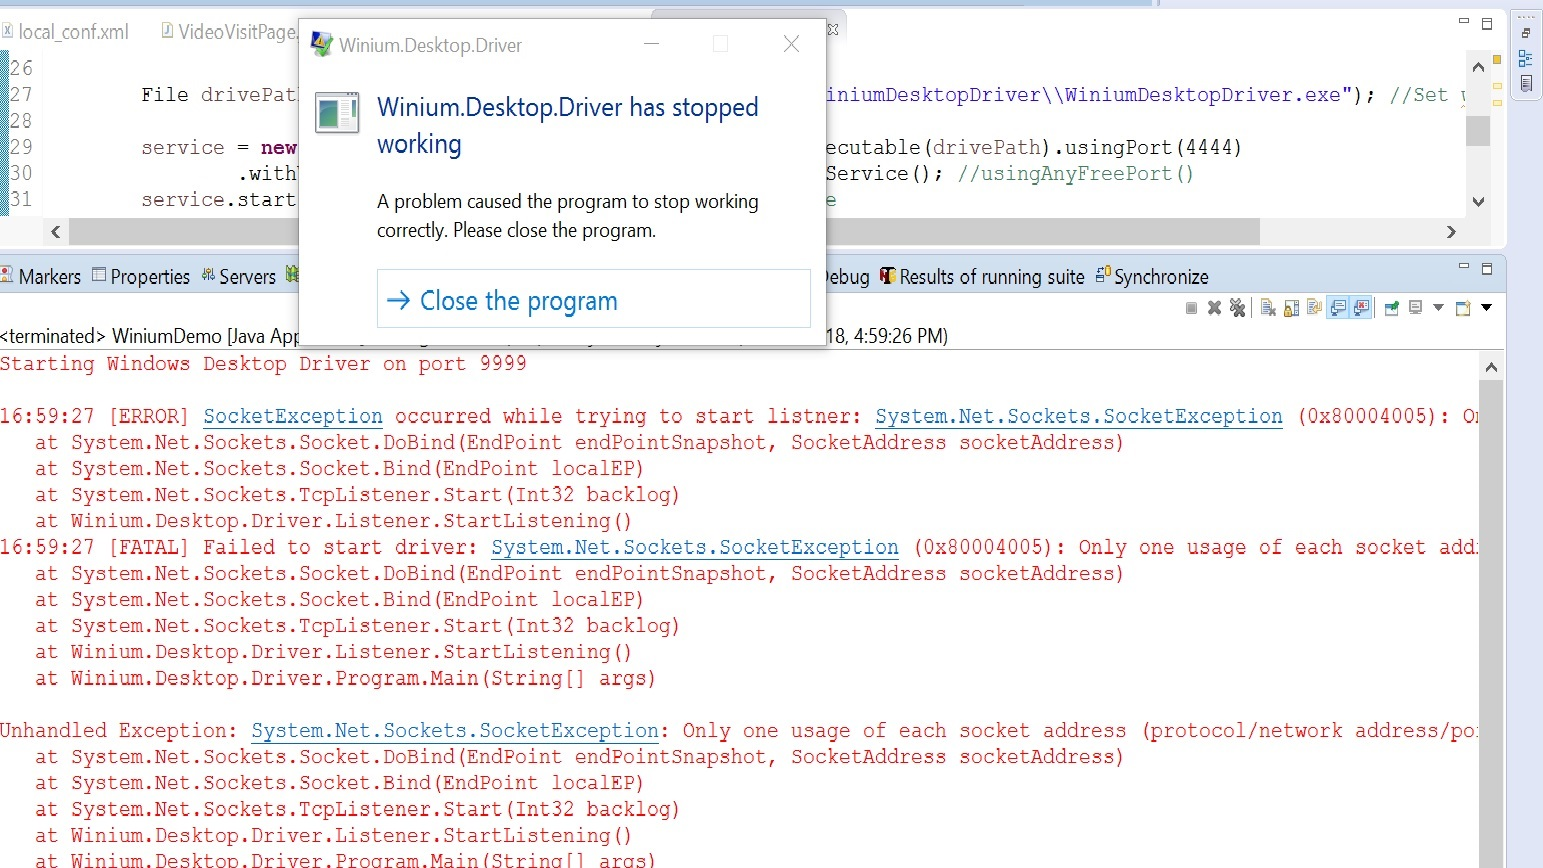 WiniumDriverService is not working · Issue #105 · 2gis/Winium